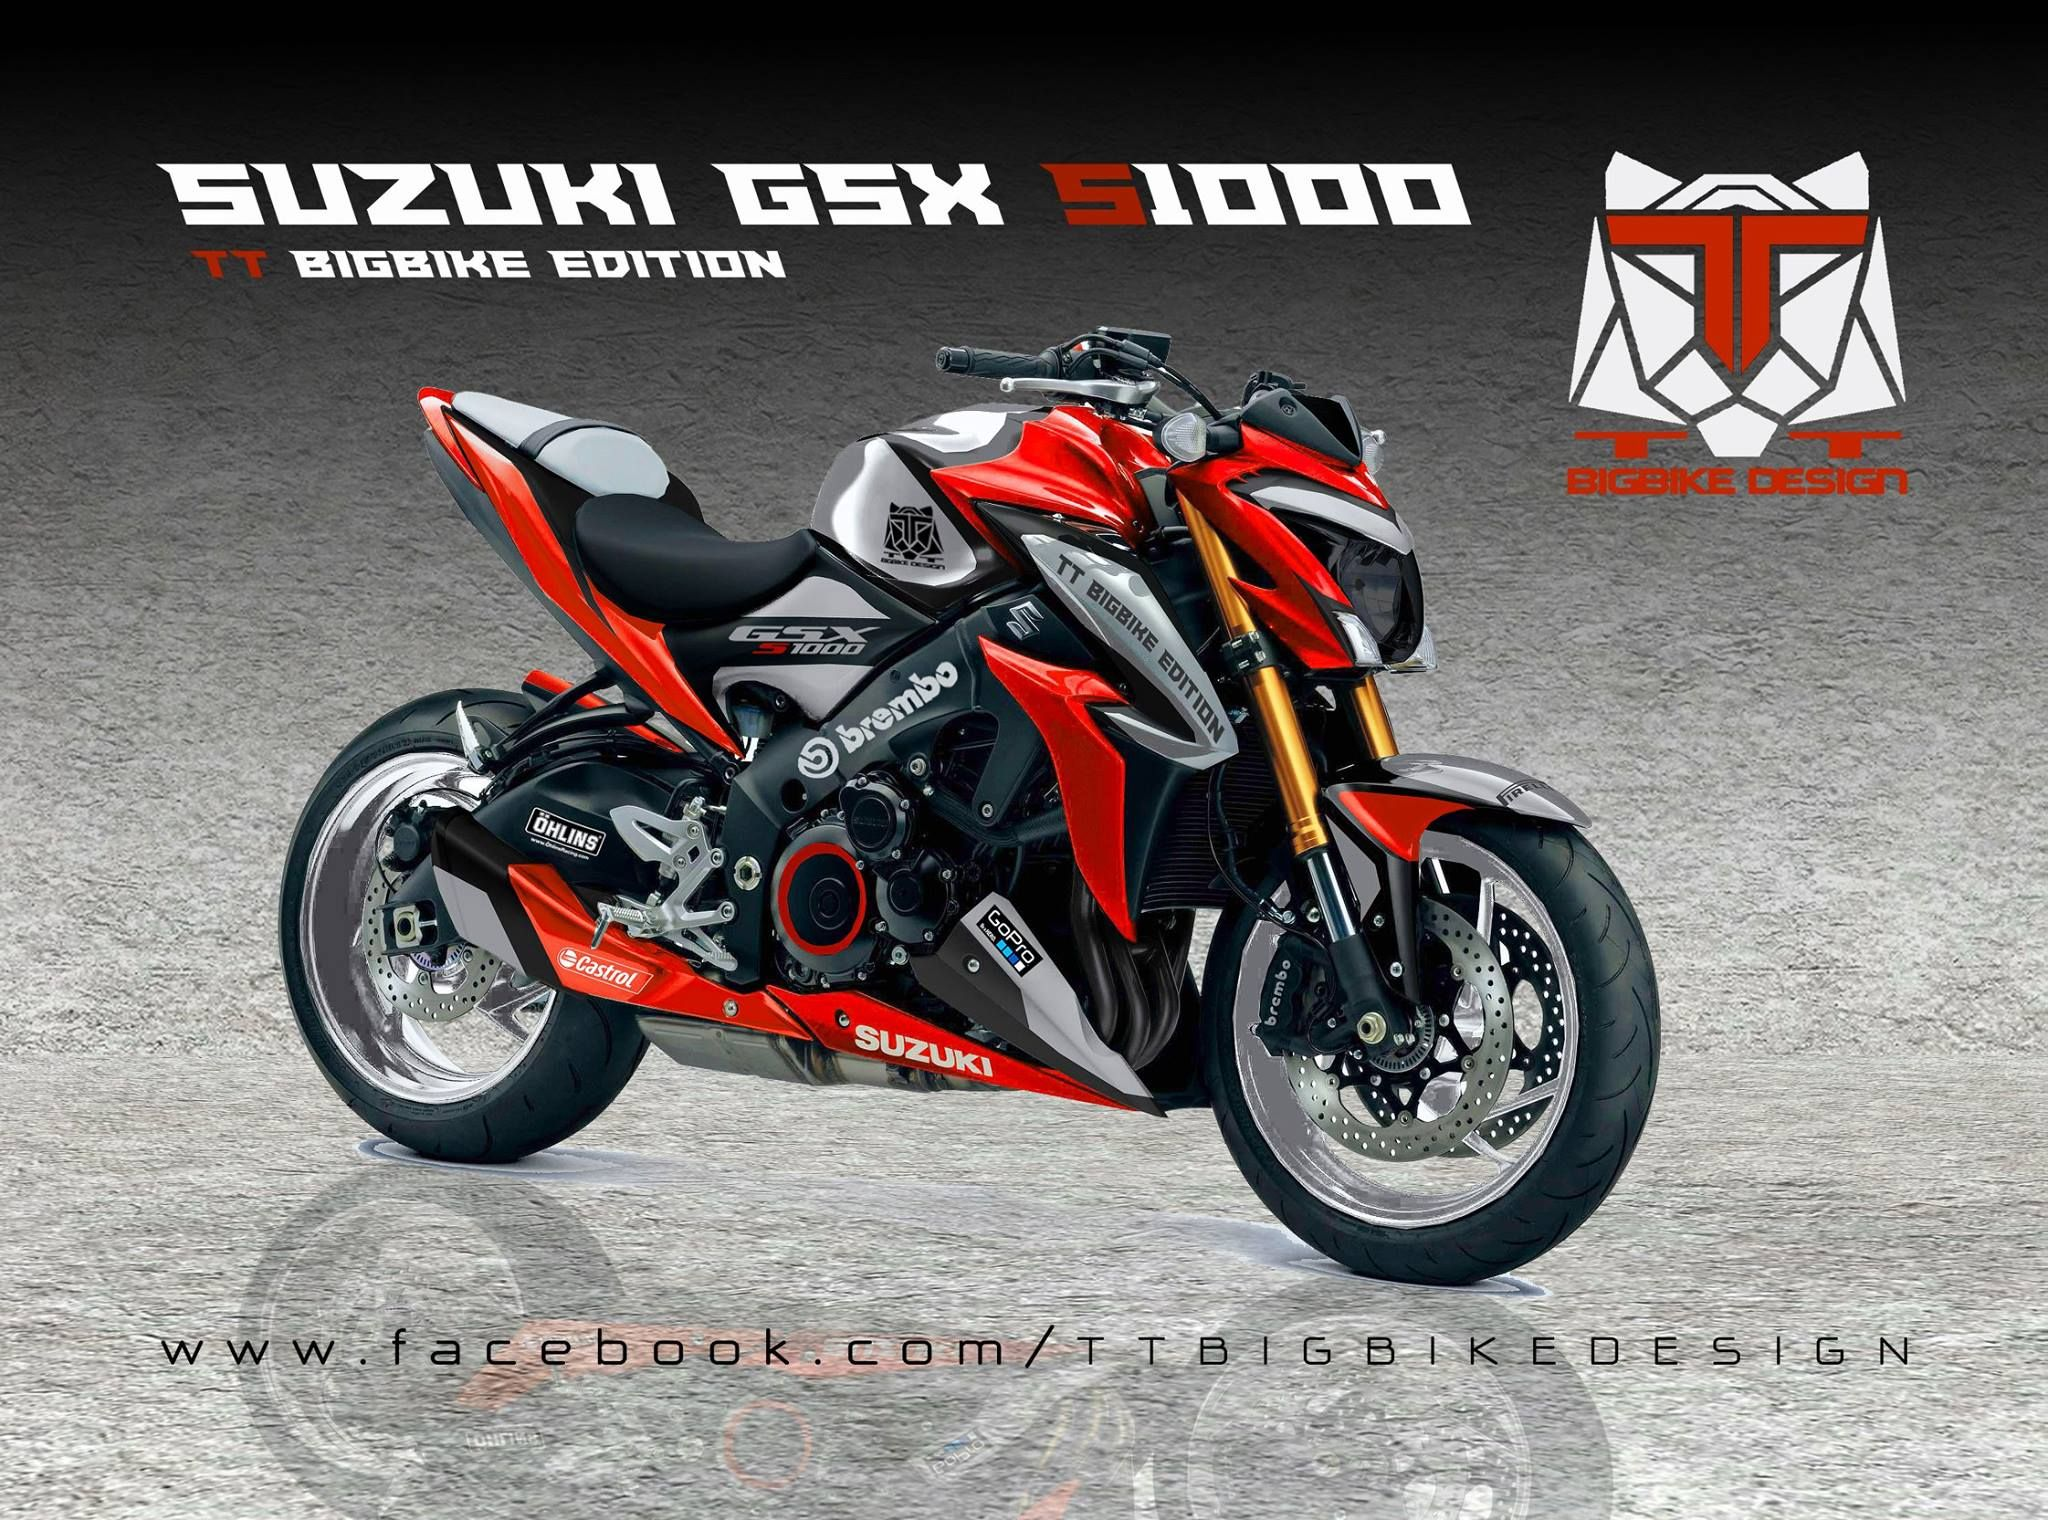 suzuki gsx s 1000 by tt bigbike design suzuki gsx s1000f. Black Bedroom Furniture Sets. Home Design Ideas